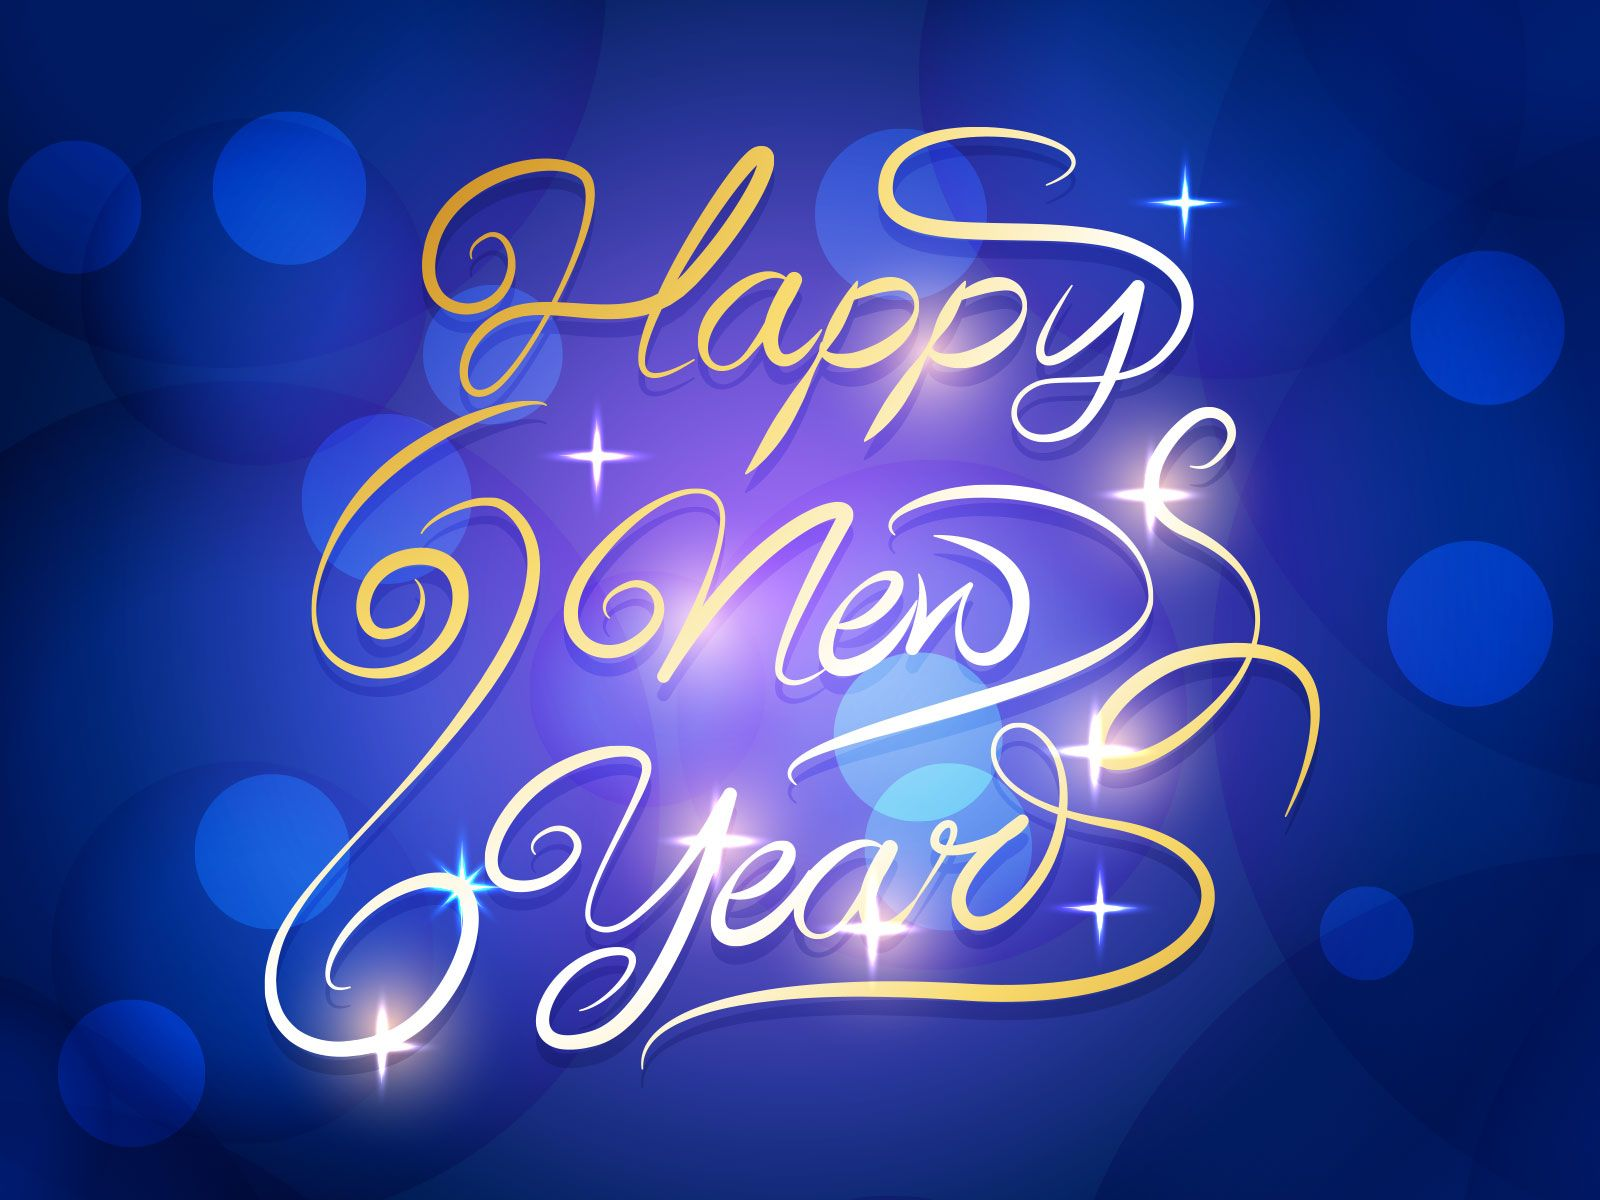 Wallpaper download new year 2015 - New Year Free Wallpaper Downloads 1600 1200 Free Wallpapers For 2015 43 Wallpapers